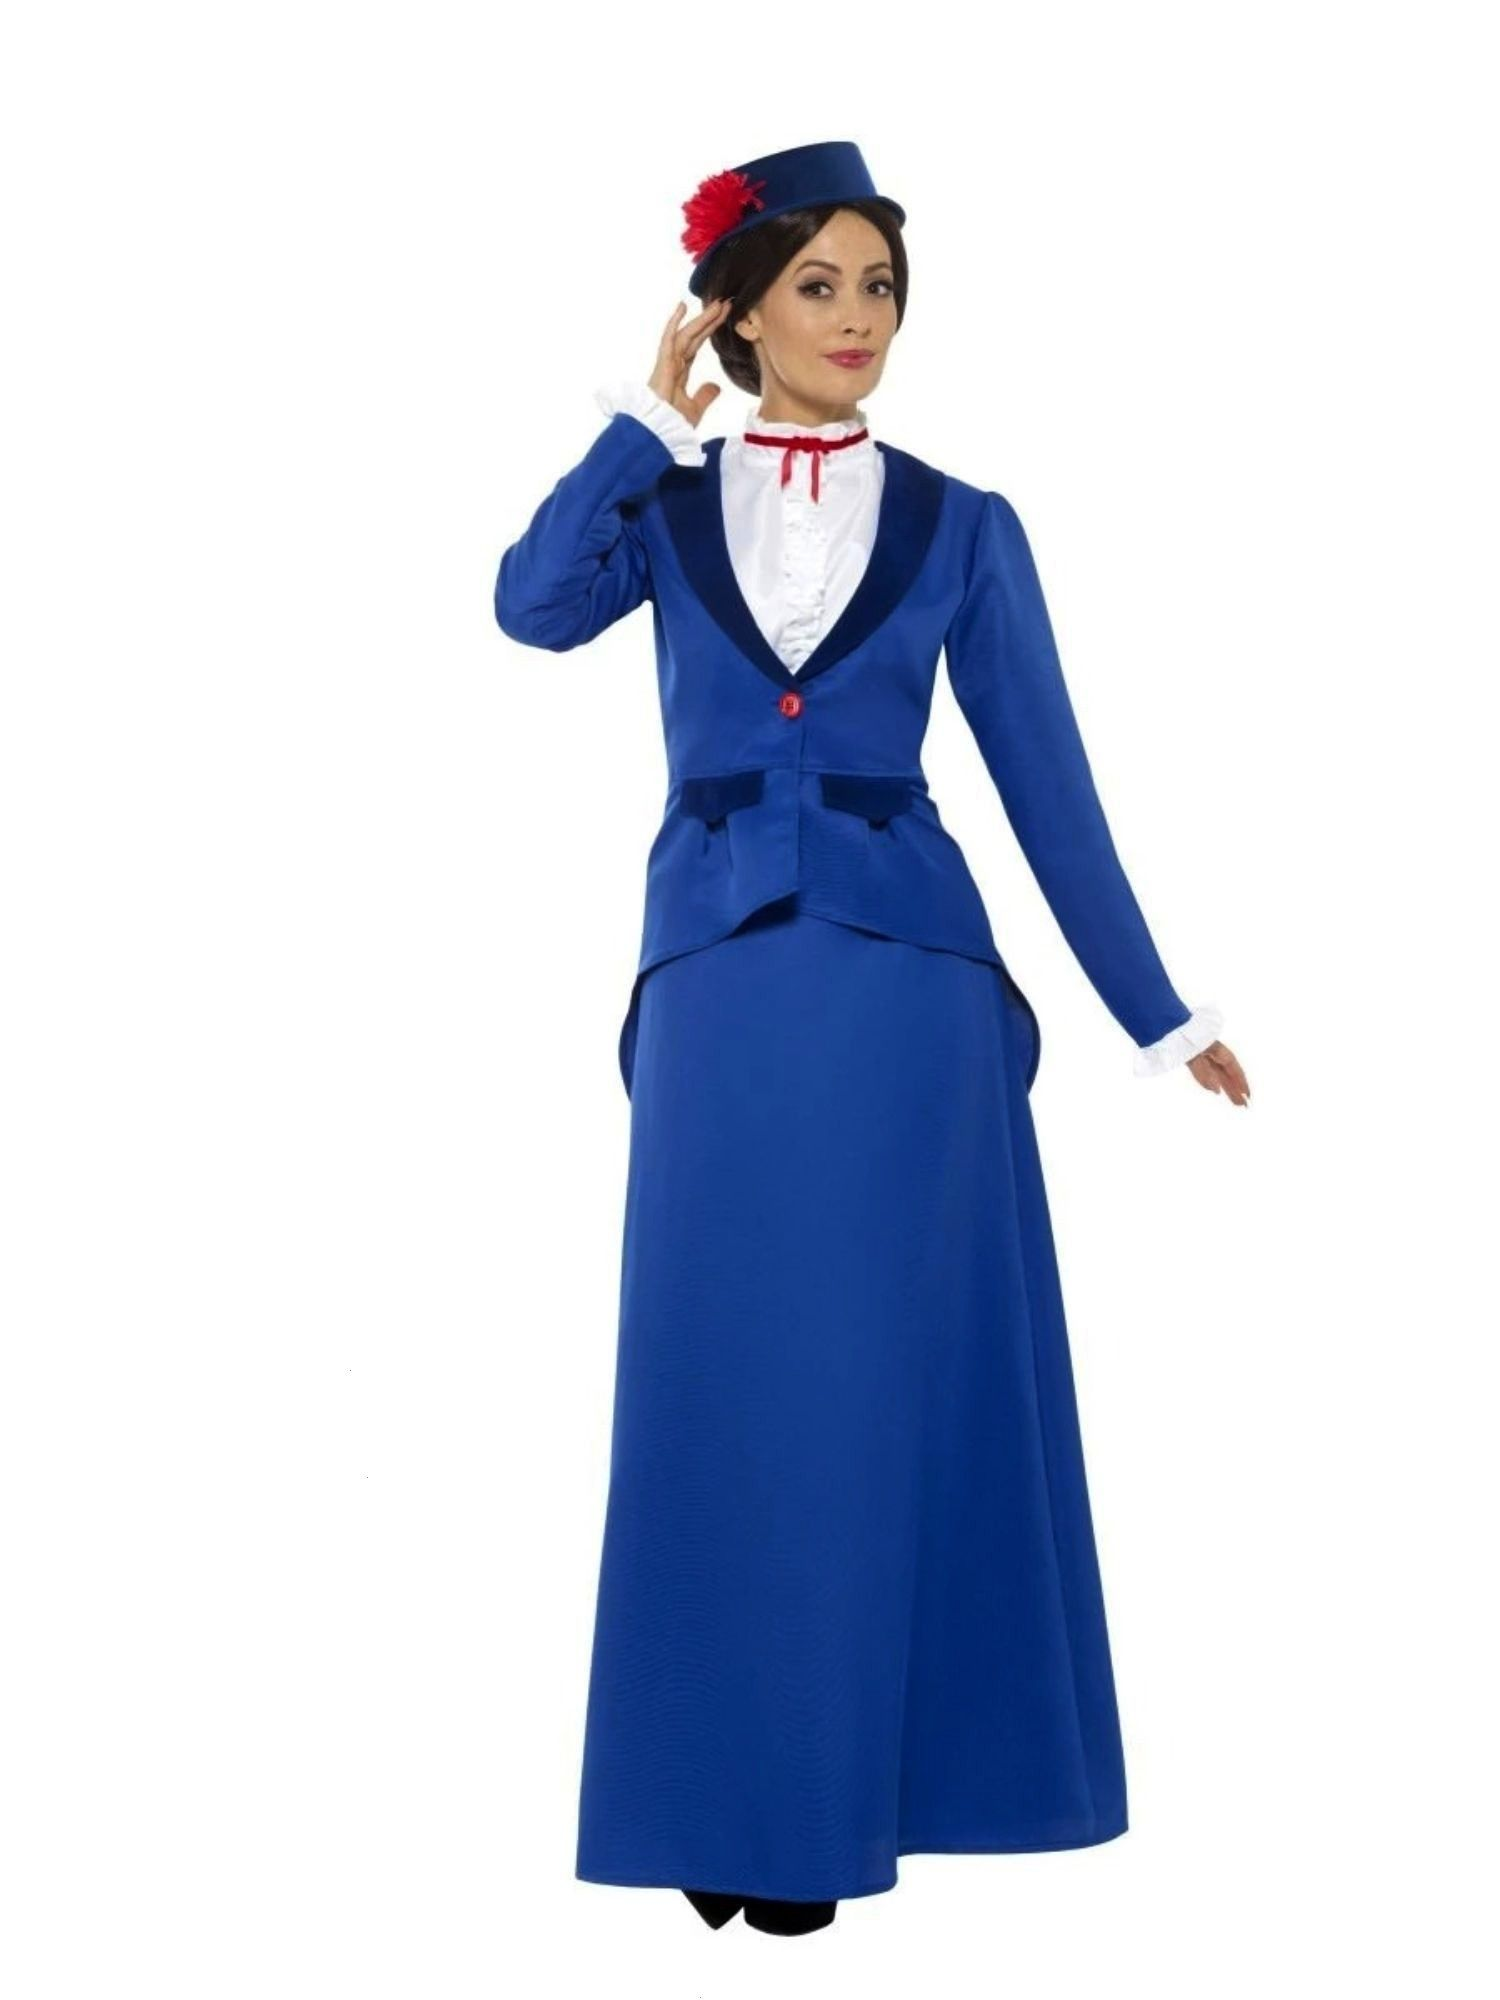 Blue and White Victorian Nanny Women Adult Halloween Costume  Medium  33484346Adult 41 Blue and White Victorian Nanny Women Adult Halloween Costume  Medium The Effective...